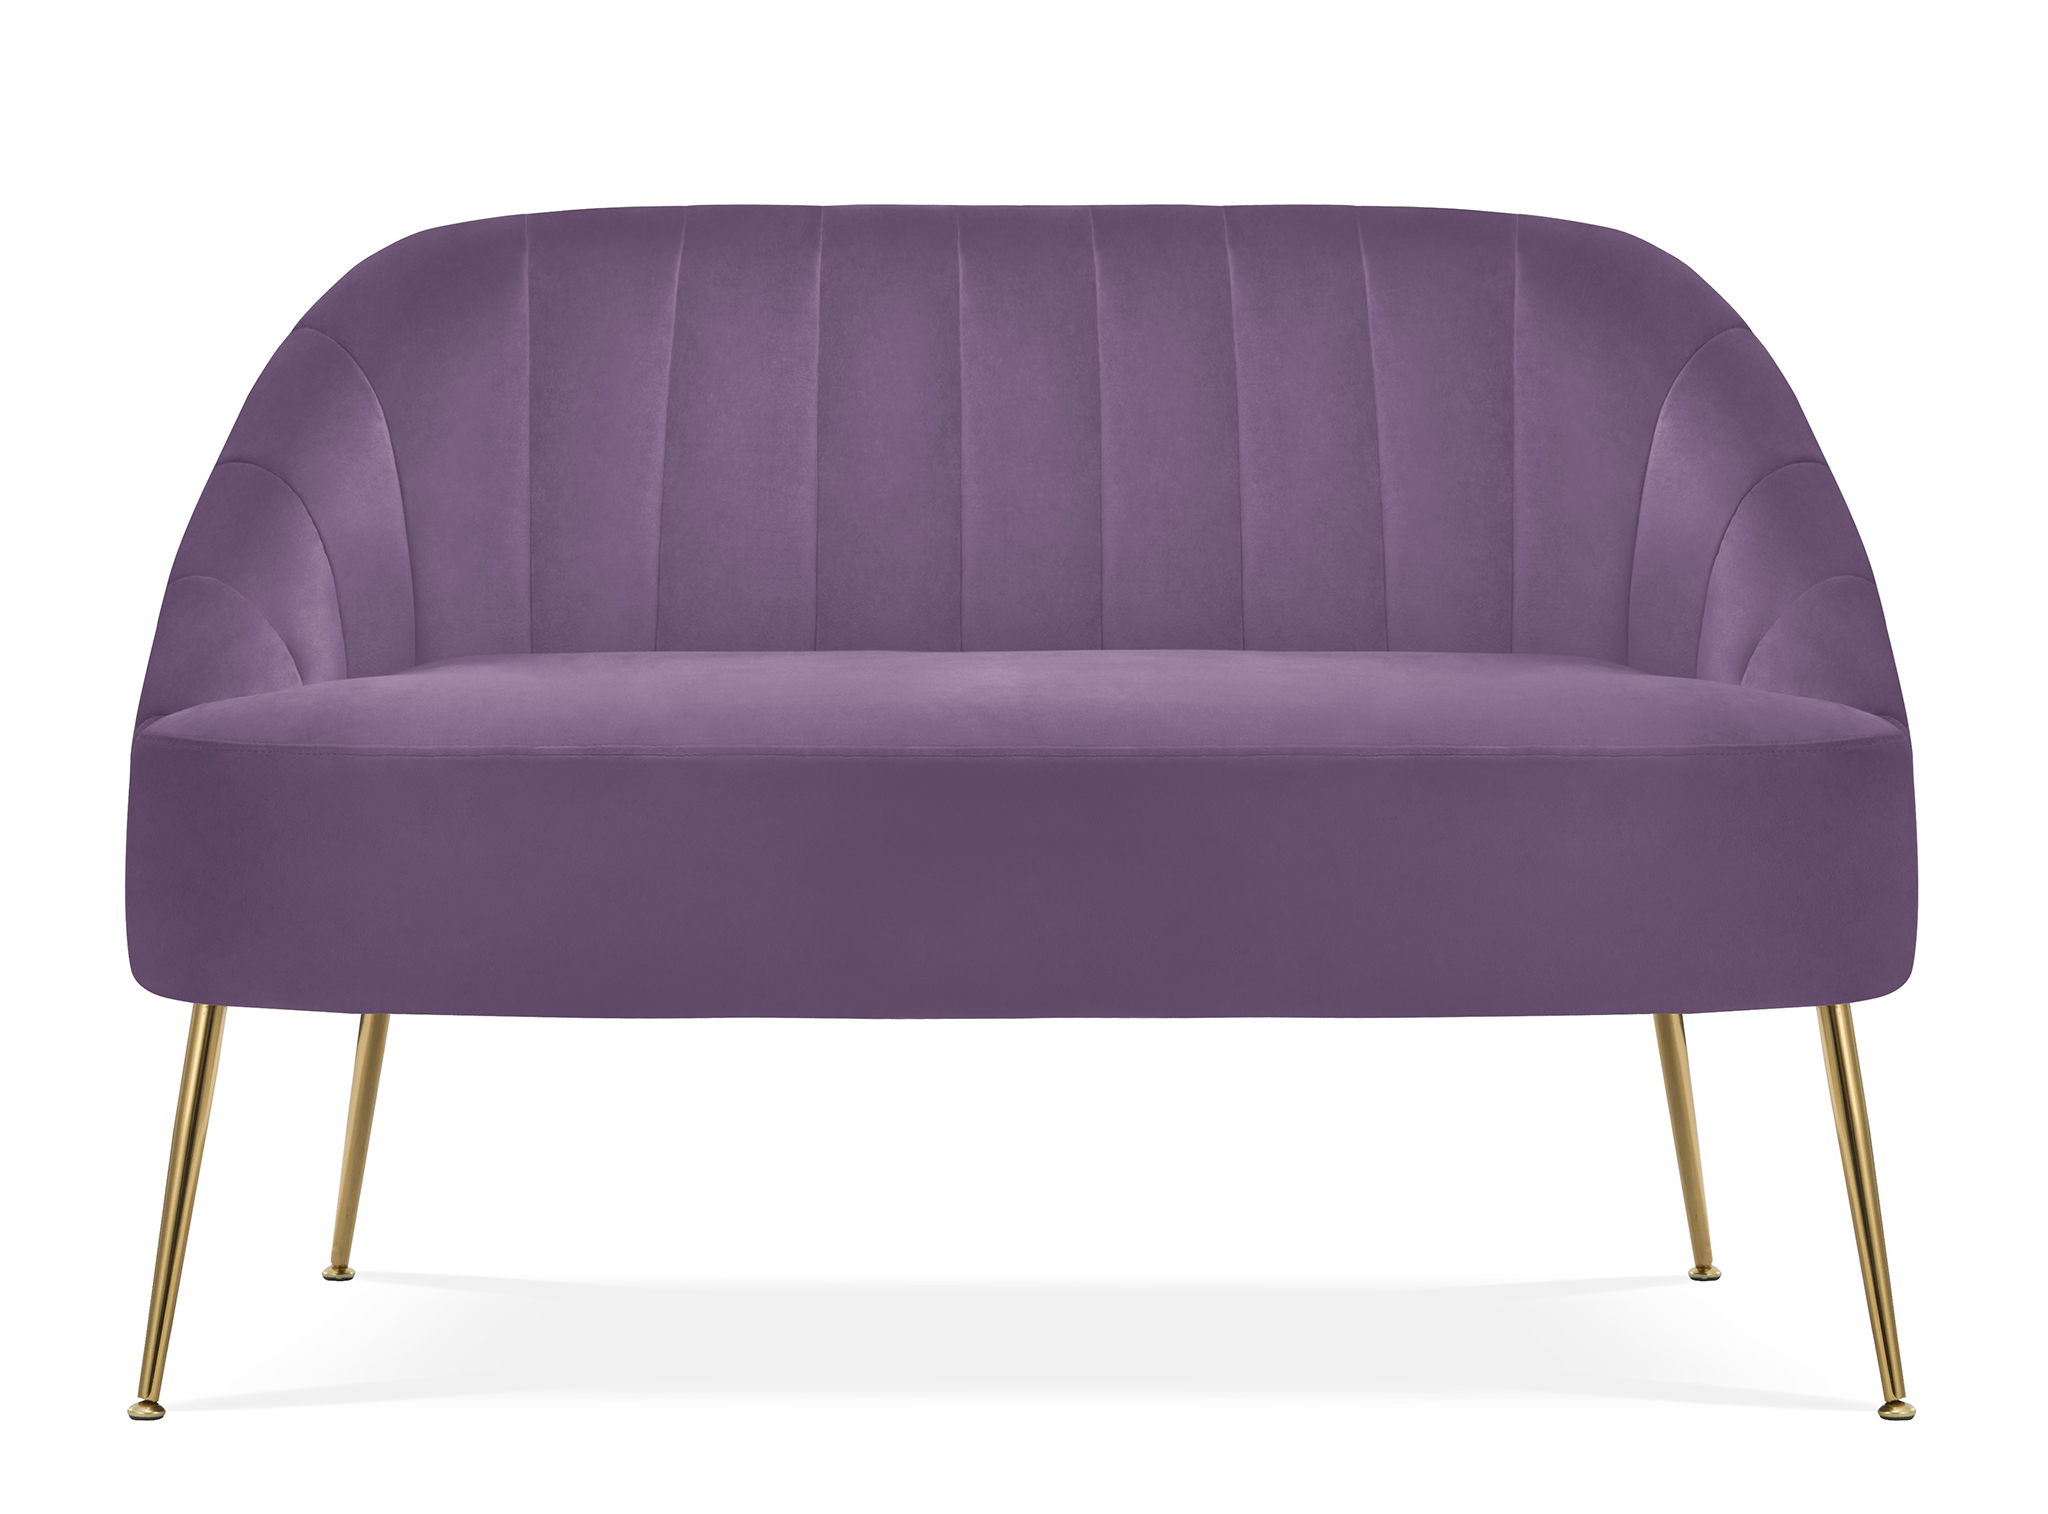 Relish In Rich Jewel Tones From Cult Furniture Fashion Trendsetter